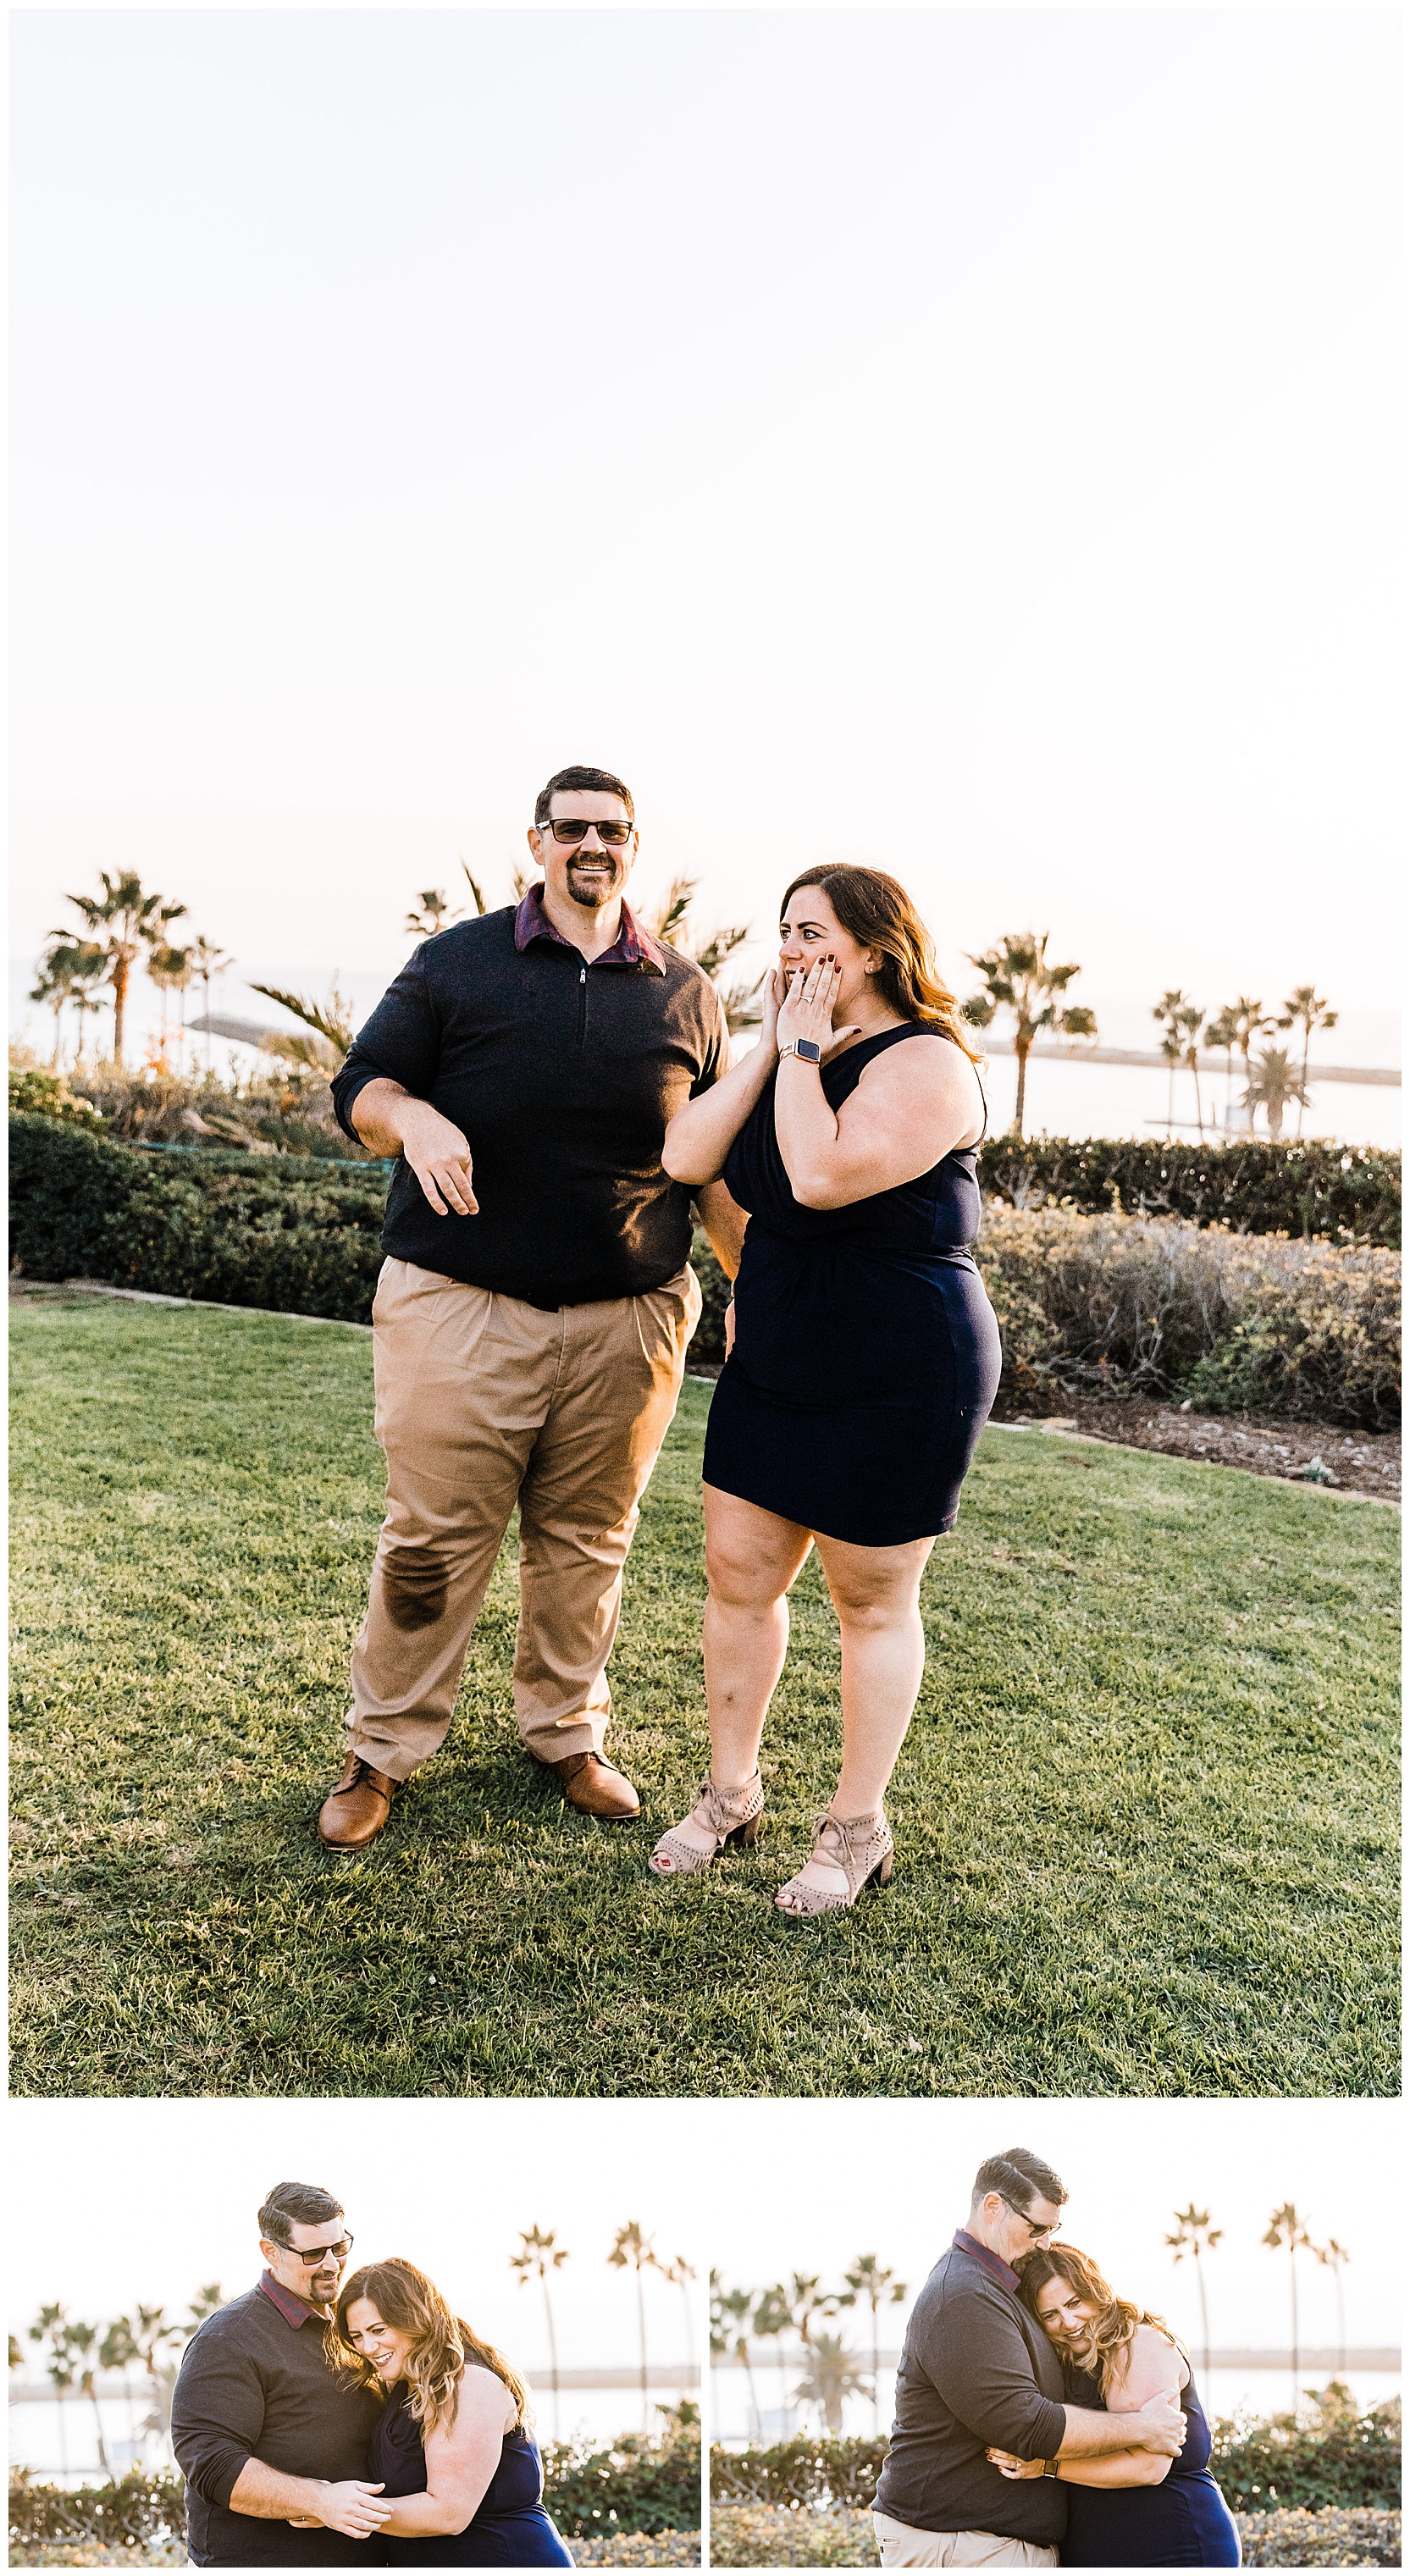 jessicafredericks_huntingtonbeach_proposal_sunset_engagement_0015.jpg